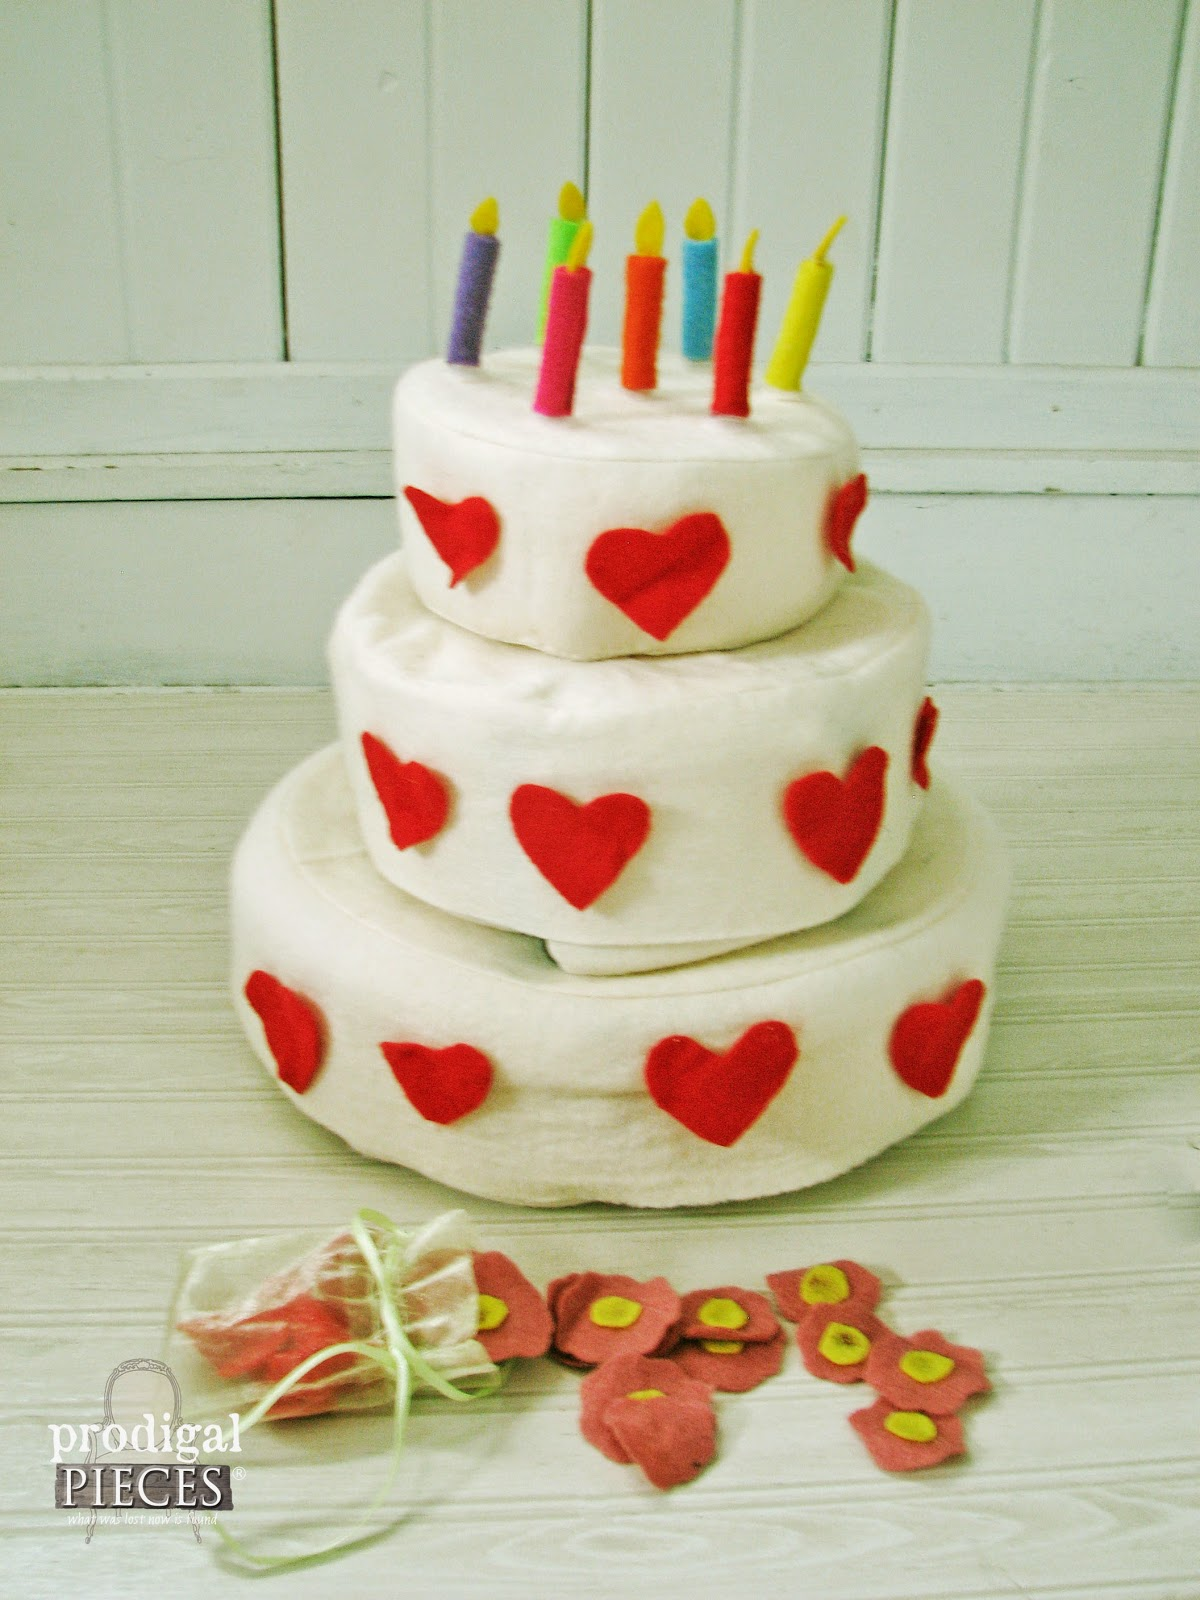 Handmade Holidays: Wool Felt Triple Layer Cake Play Set by Prodigal Pieces www.prodigalpieces.com #prodigalpieces